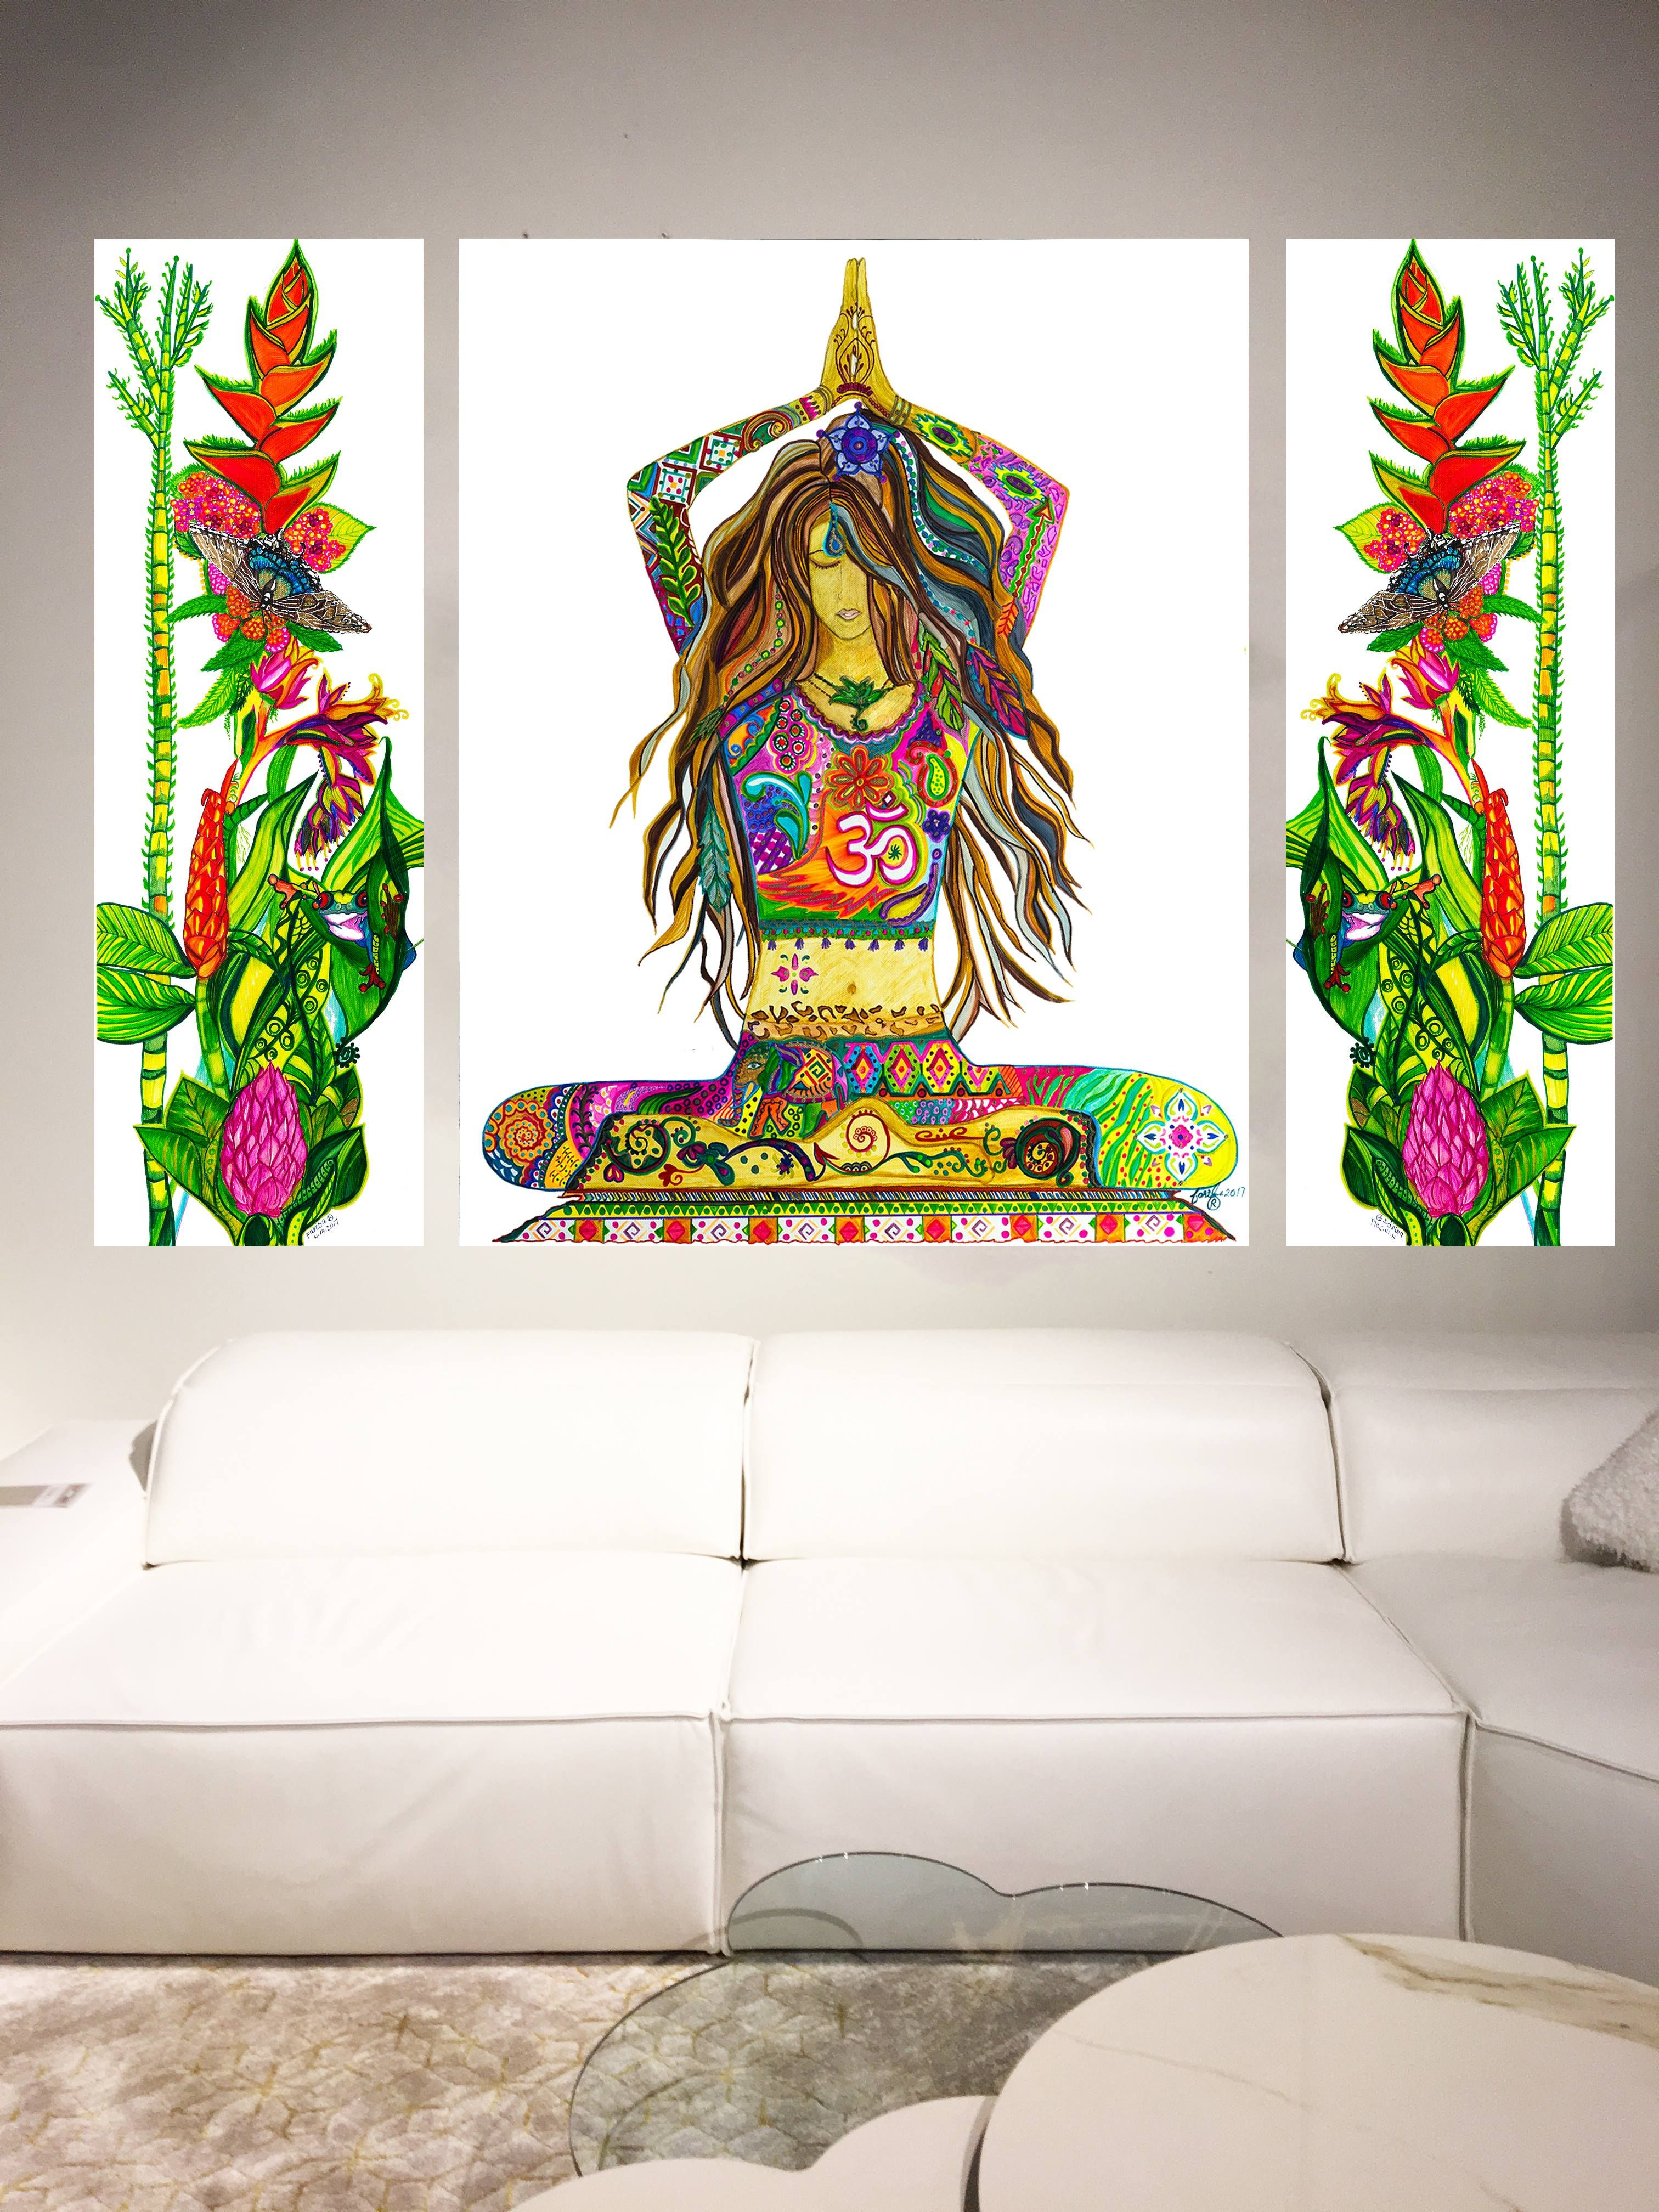 Yoga Pose Painting Gallery Wrapped Canvas Print Bohemian Style Home Decor Namaste Yoga Studio Fine Art Modern Yoga Artwork Abstract Yoga Studio Decor Hand Painted Artwork Meditation Art